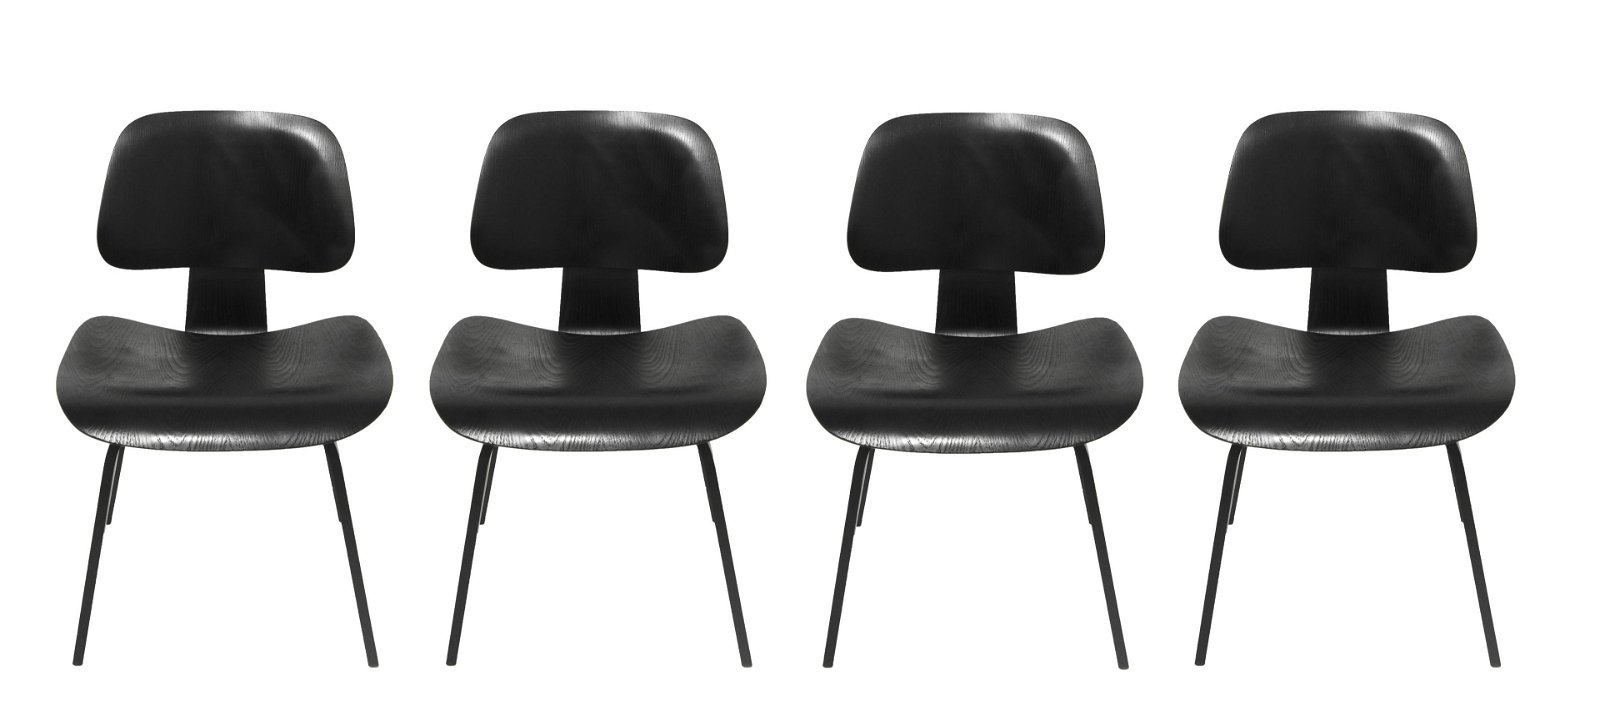 Eames for Herman Miller Black DCW Chairs, 4